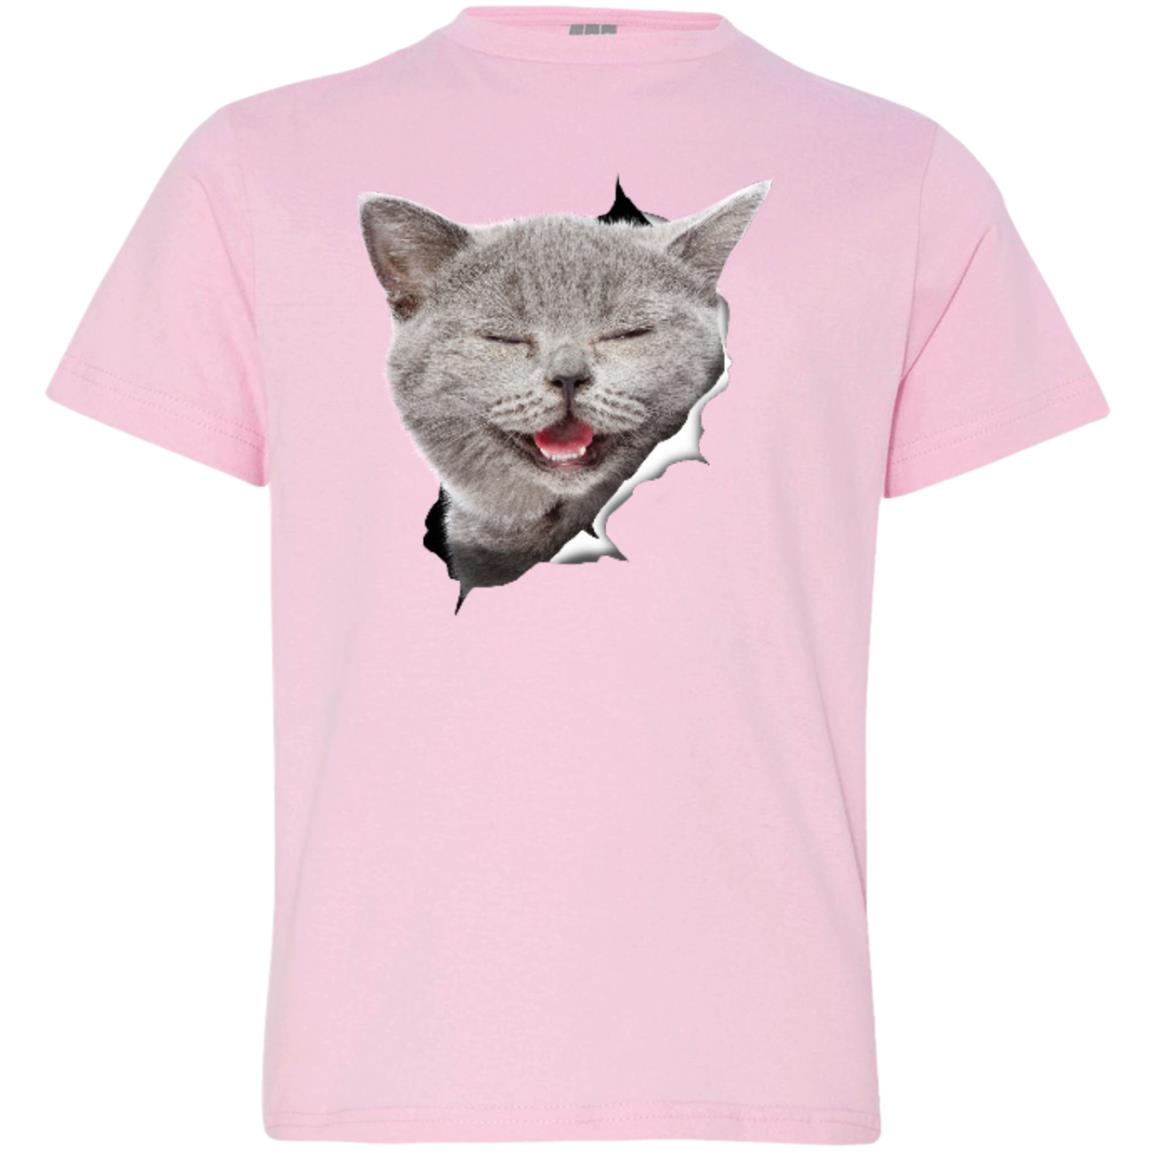 Grey Cat Laughing Youth Jersey T-Shirt